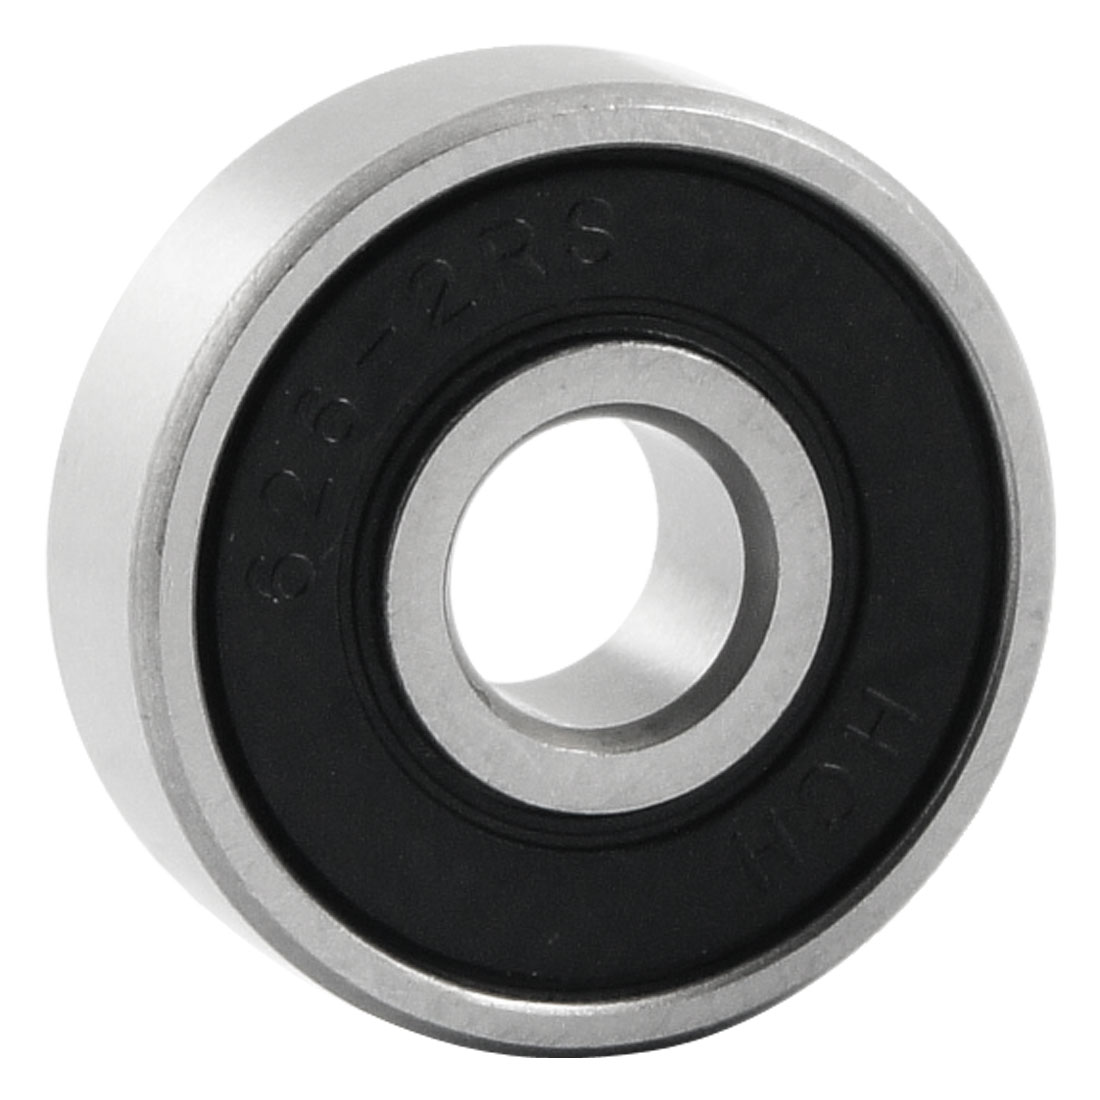 6mm x 19mm x 6mm Dual Seal Deep Groove Radial Ball Bearing 626-2RS